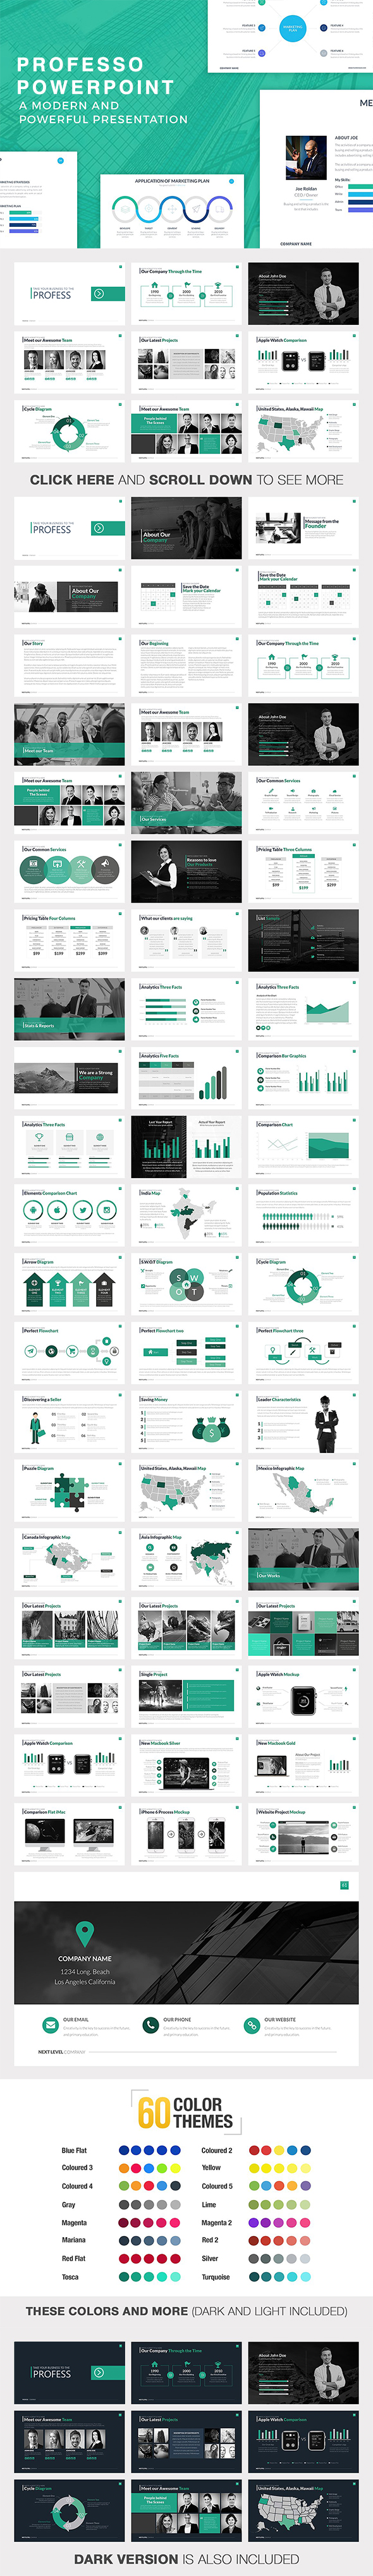 GraphicRiver Professo Powerpoint Template 20604847